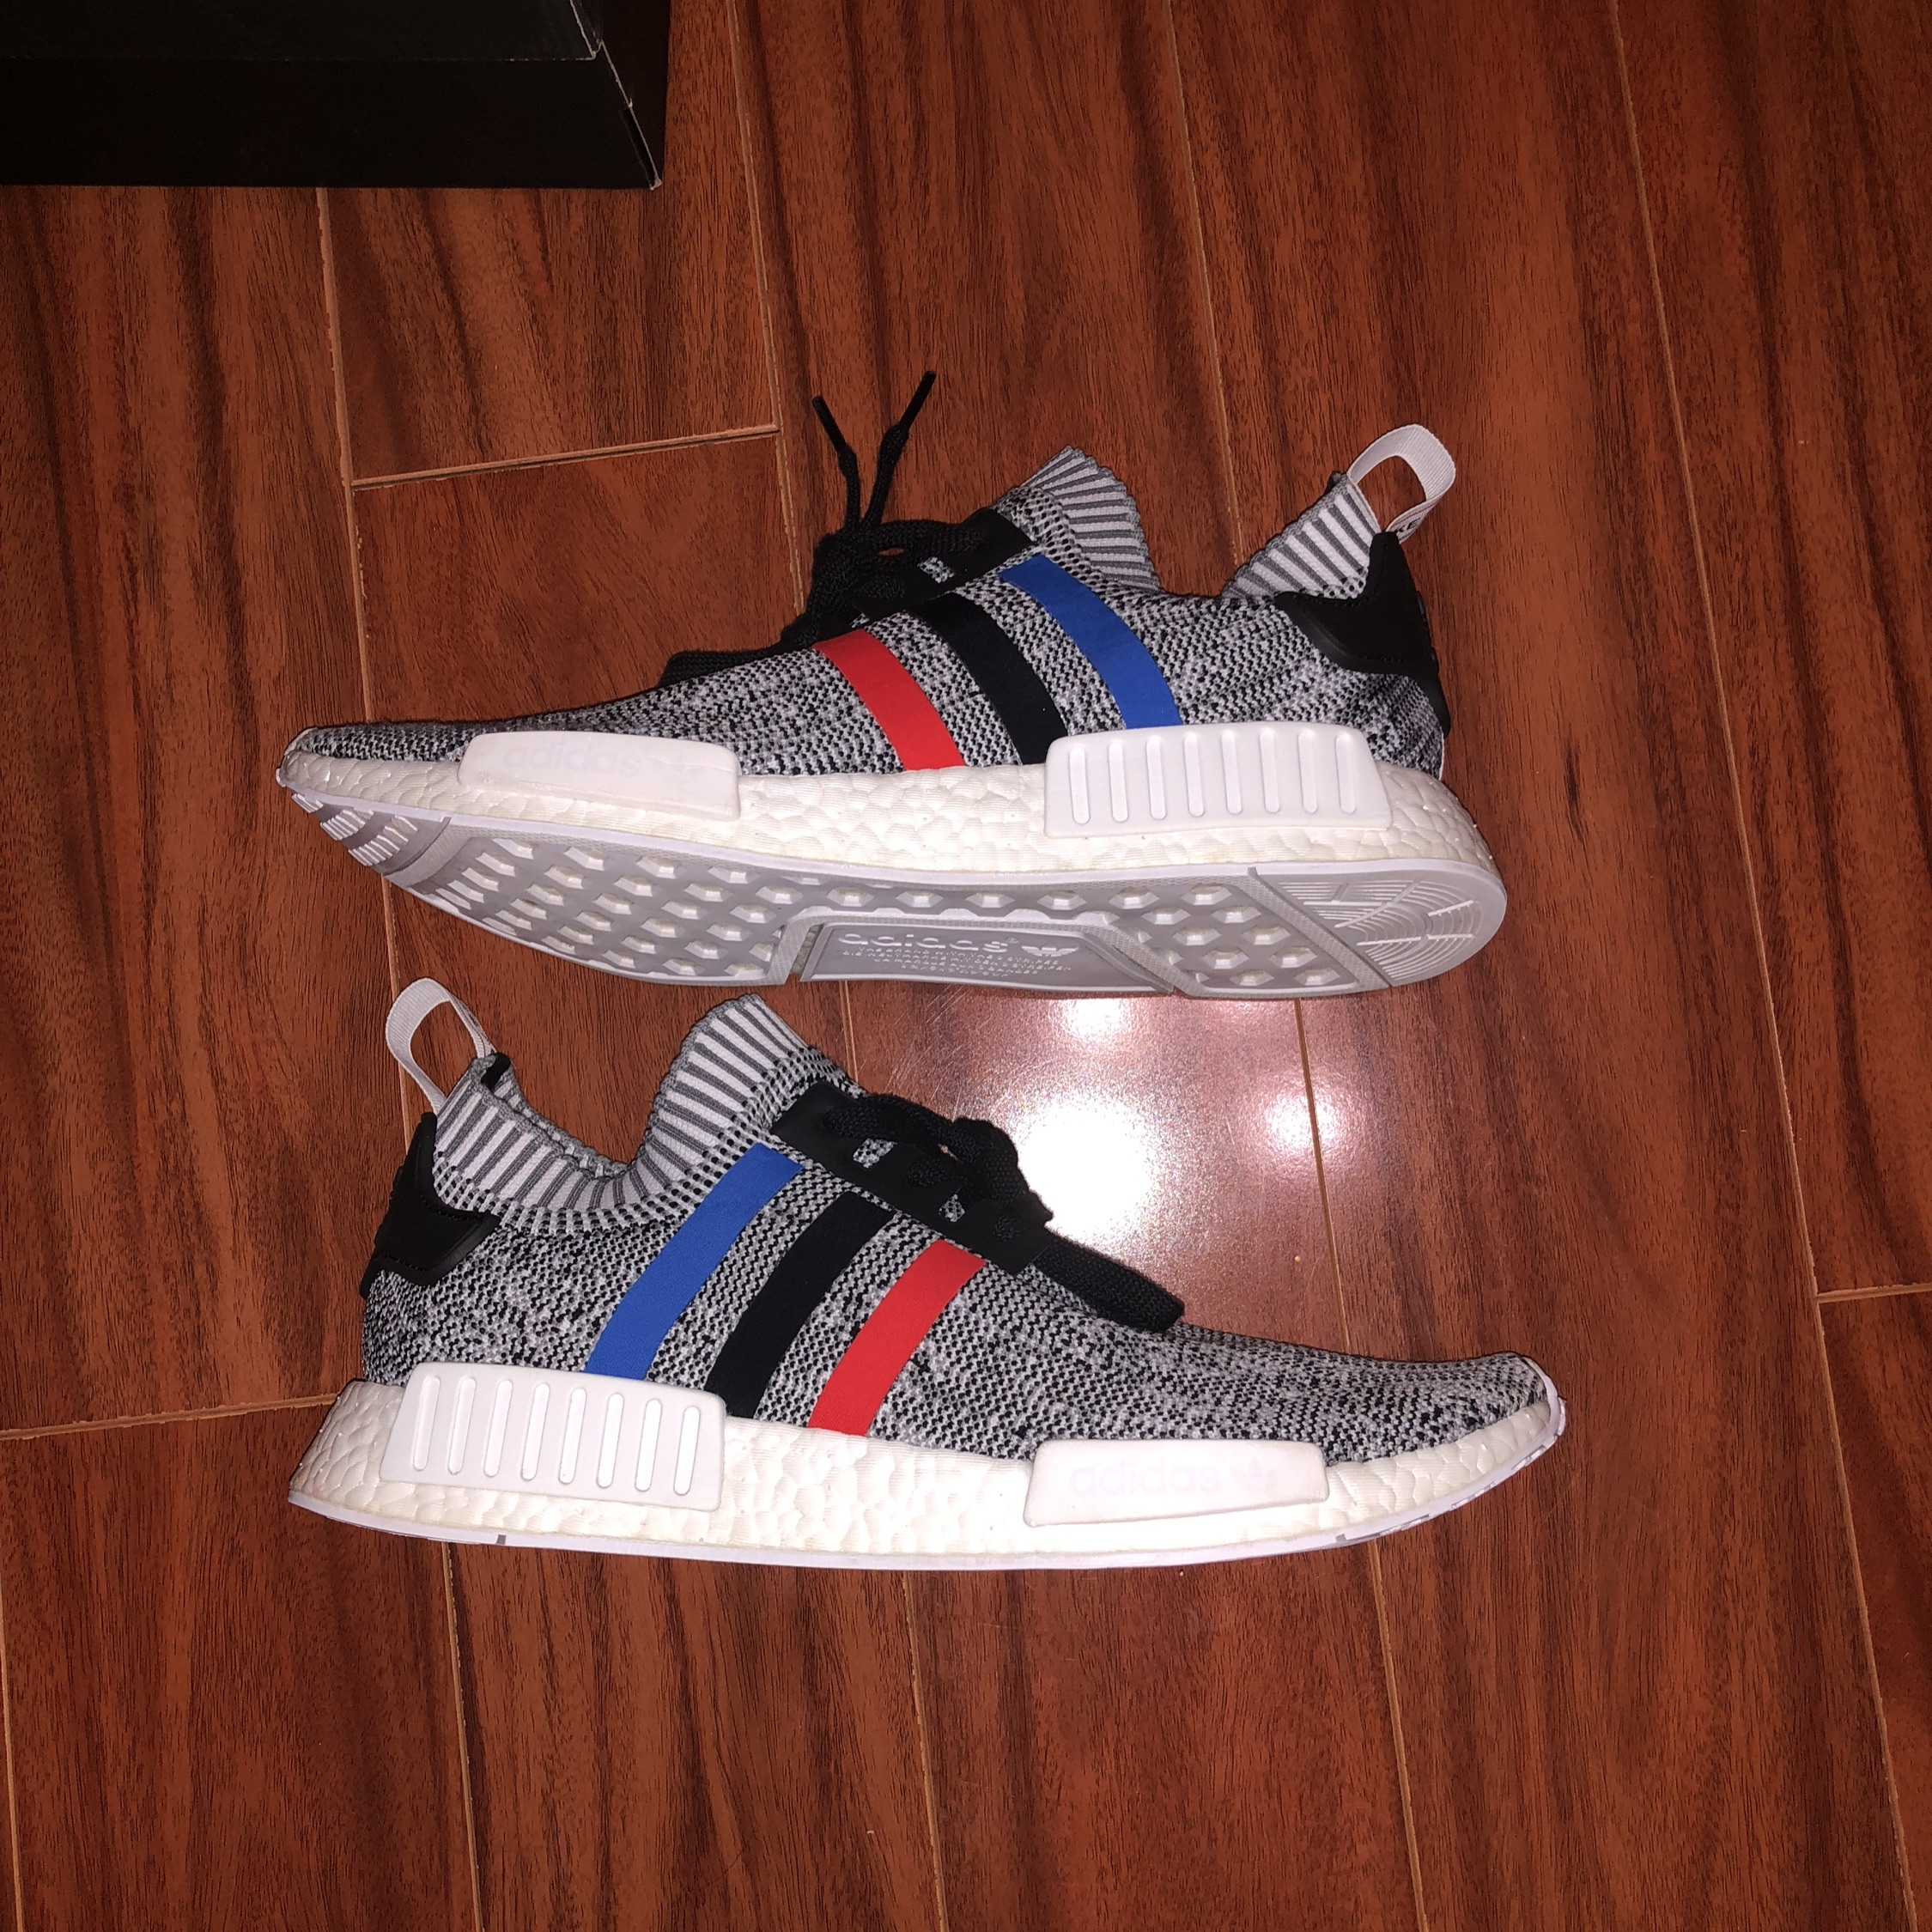 Adidas Nmd R1 Tri Color Size 11.5